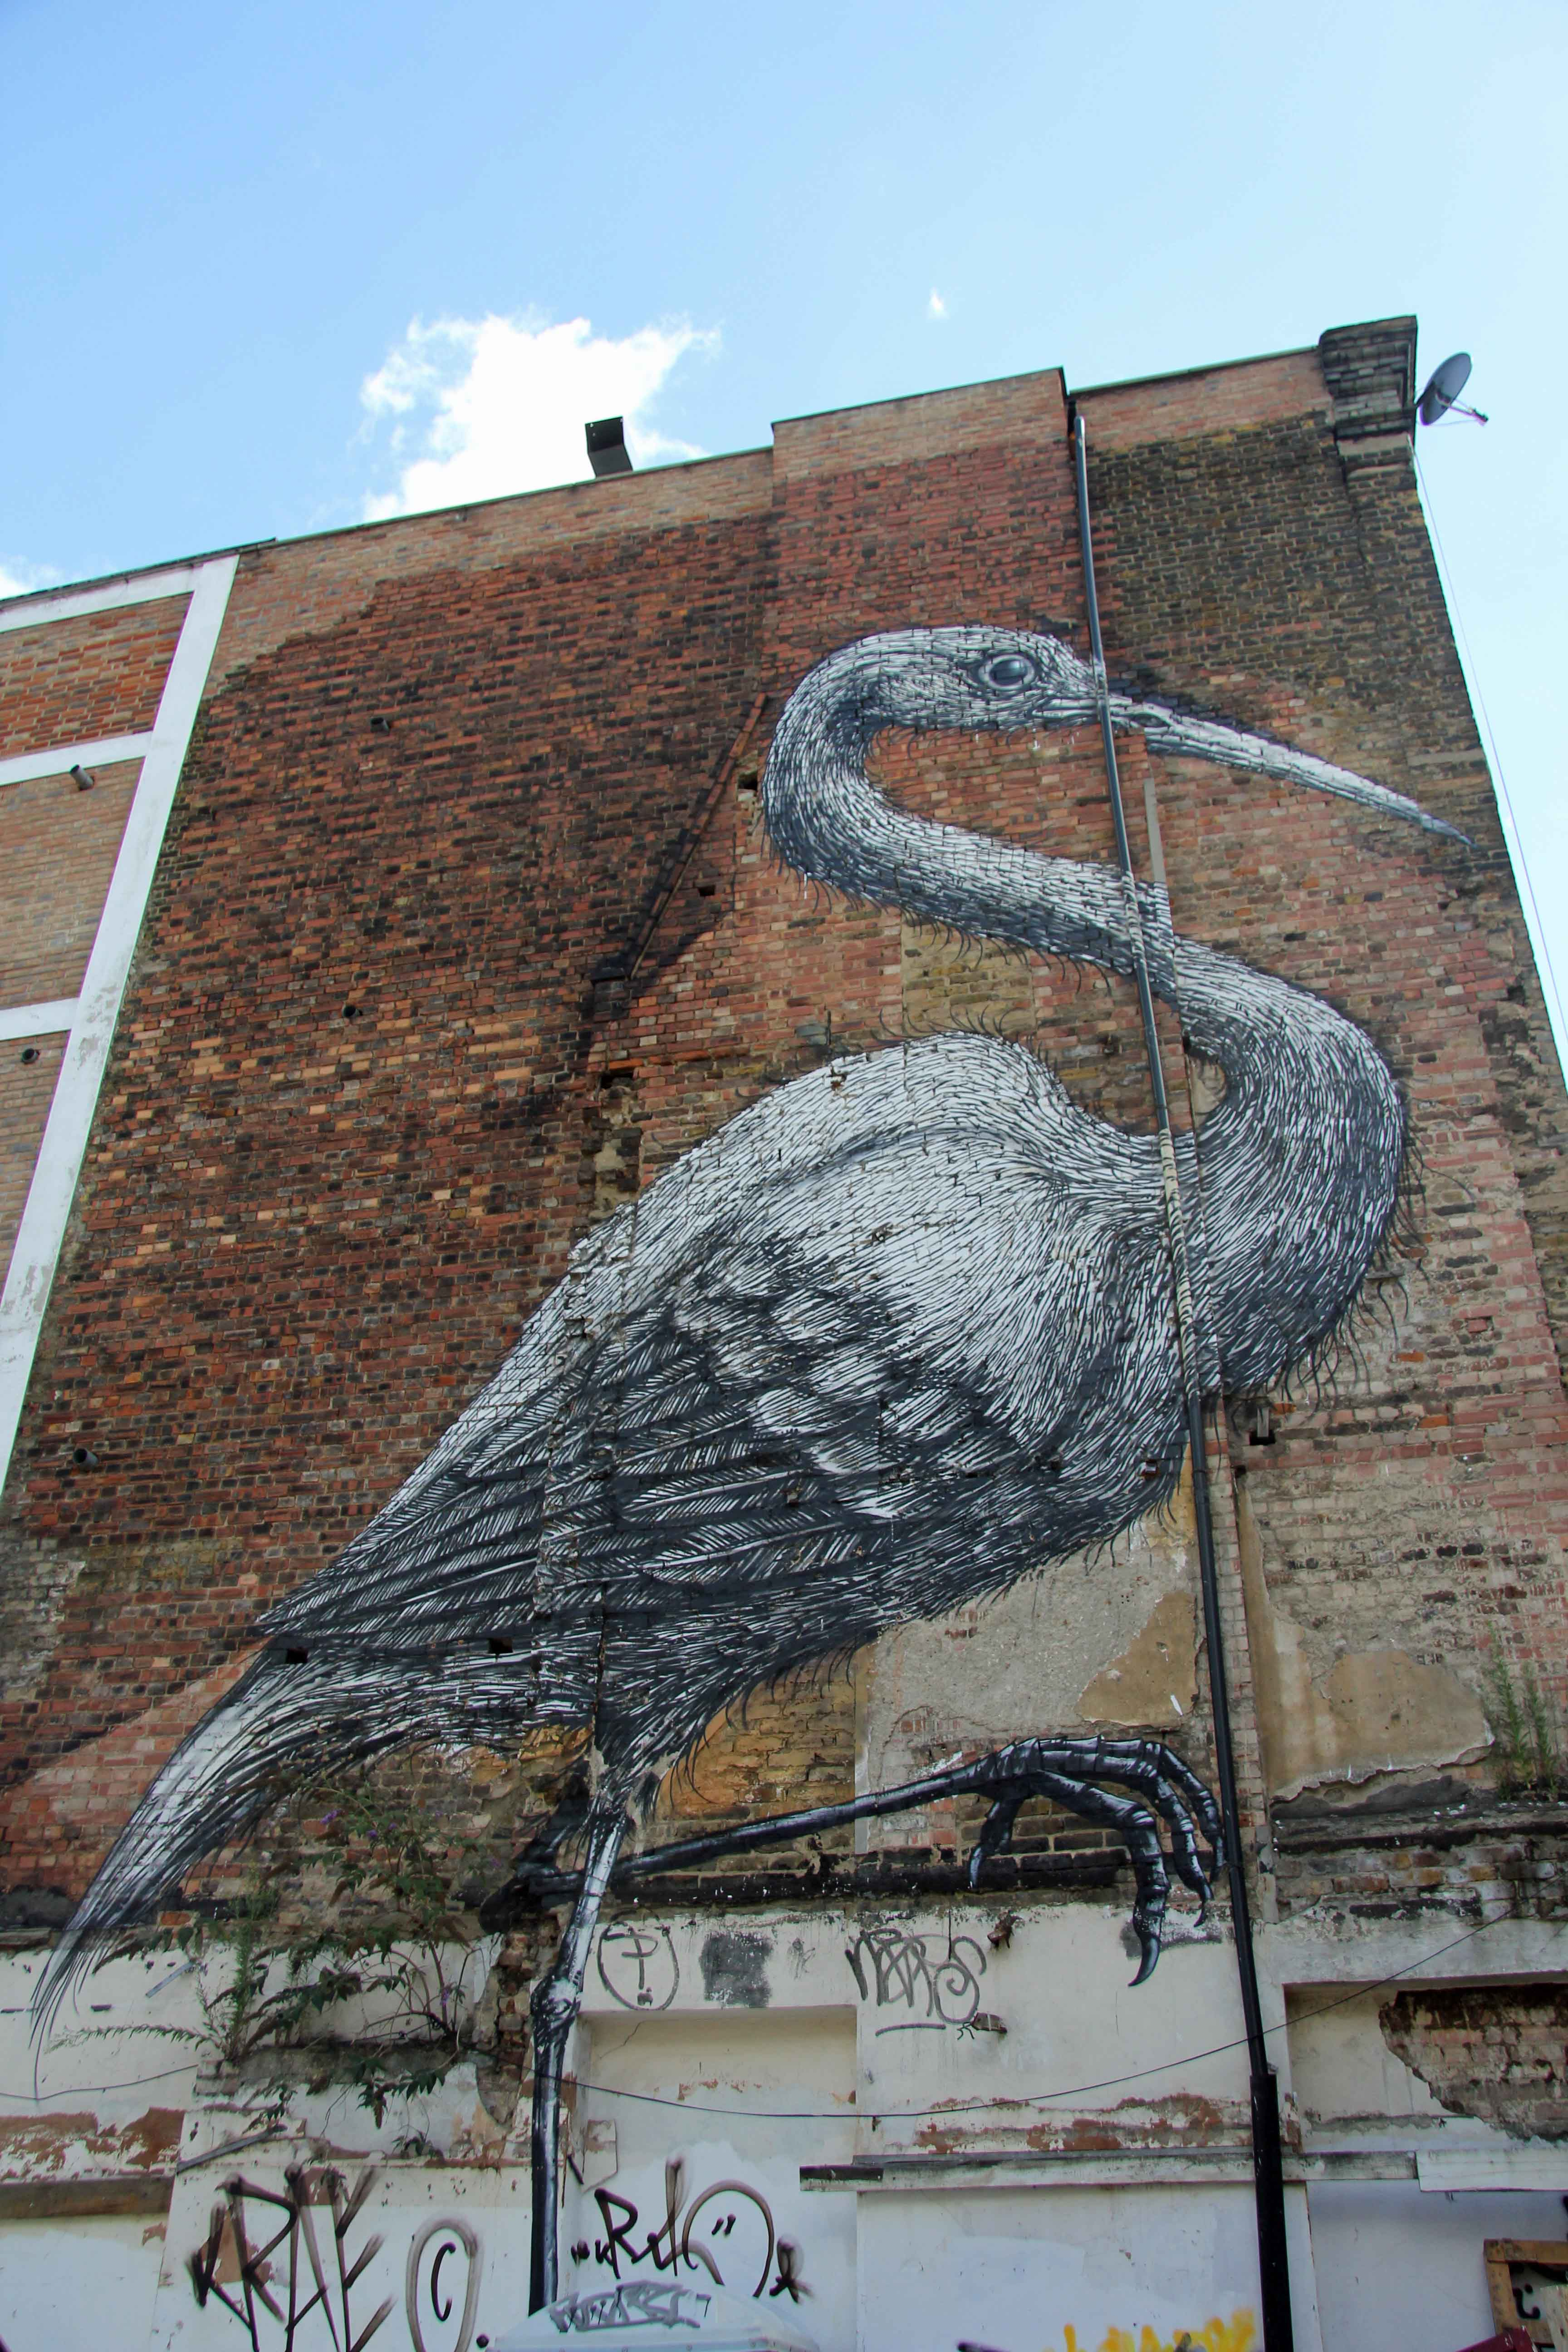 Giant Crane - Street Art by ROA in East London